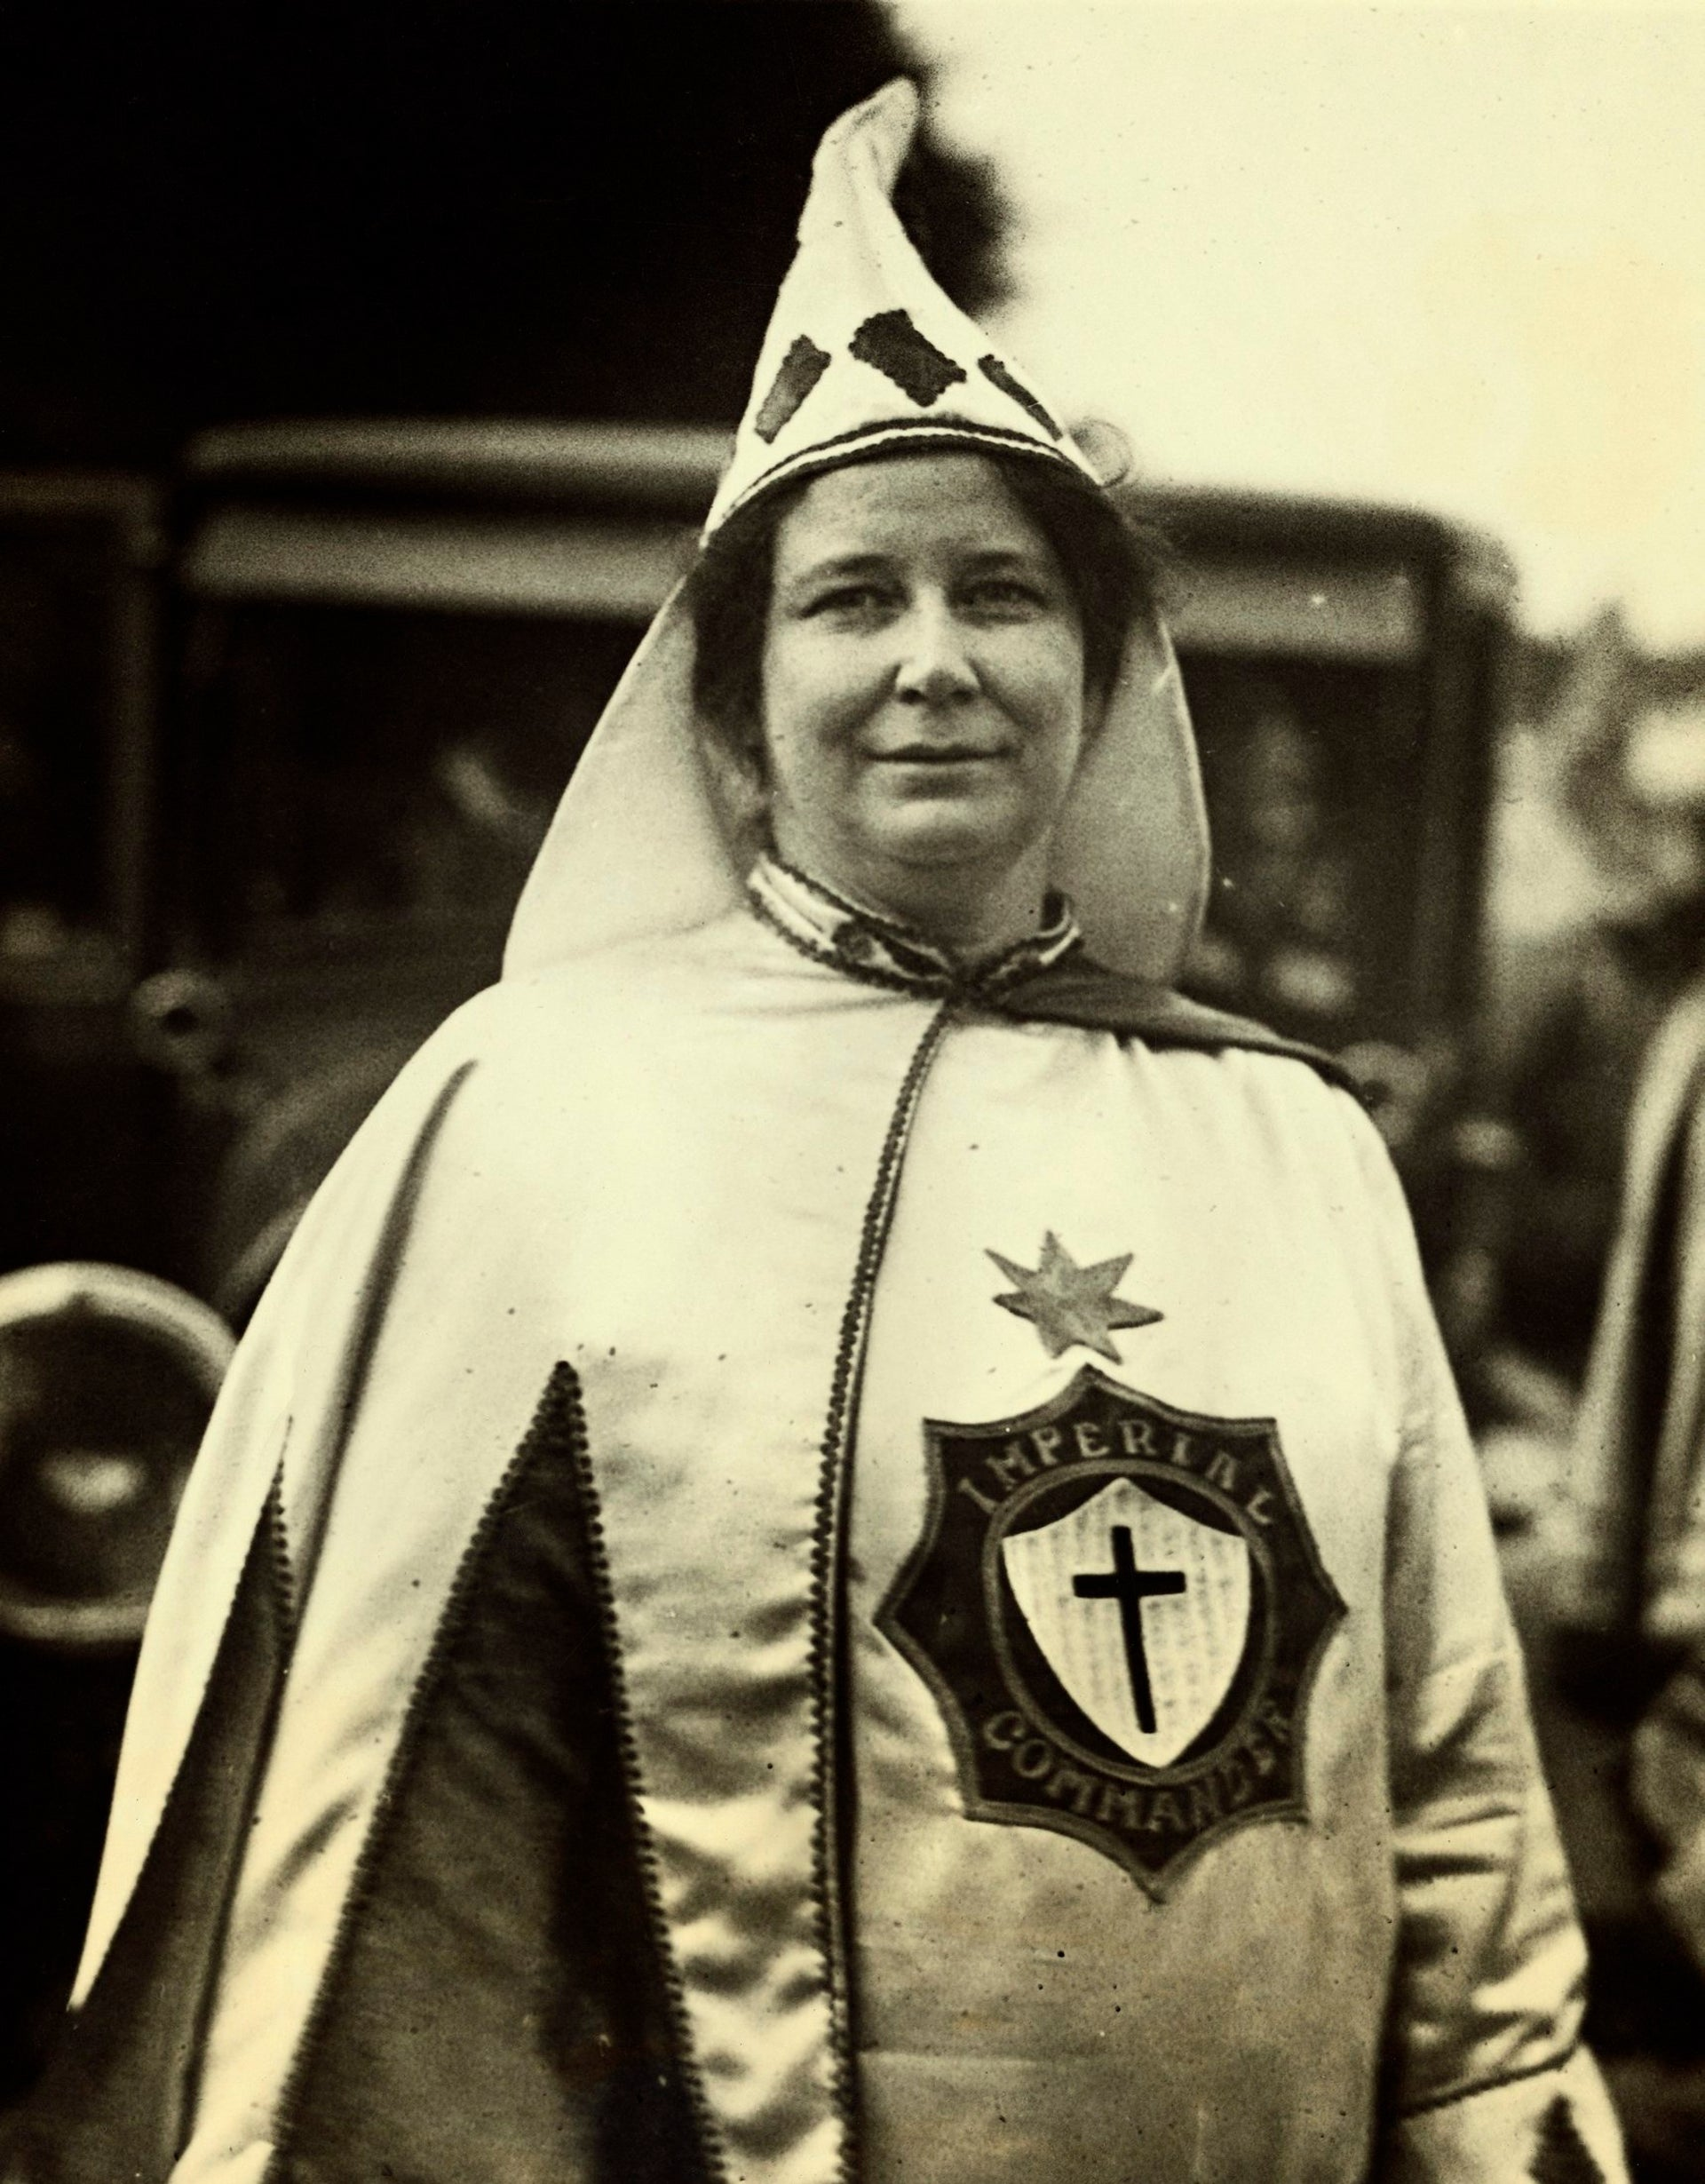 14 Sep 1926, Washington, DC, USA --- Original caption: More than 13,000 participate in the annual parade of the Ku Klux Klan, the costumes of the marchers presenting an attractive picture. Photo shows- Mrs. Robbie Gill Comer, Imperial Commander of the women's division .